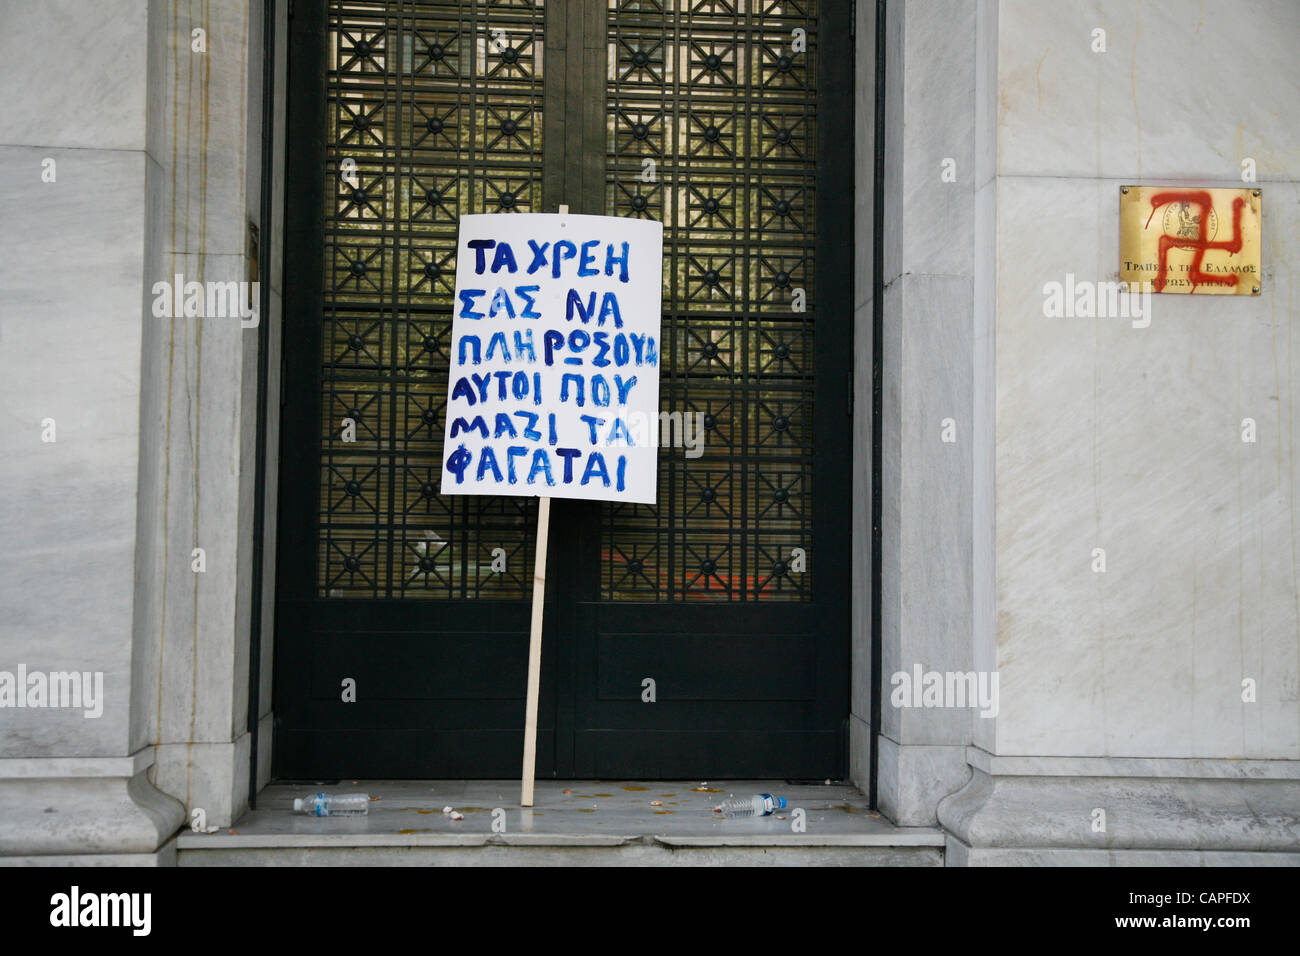 April 6, 2012. Thessaloniki, Greece. Stevedores protested about the reduction of 70% of their reserves at the Bank Stock Photo